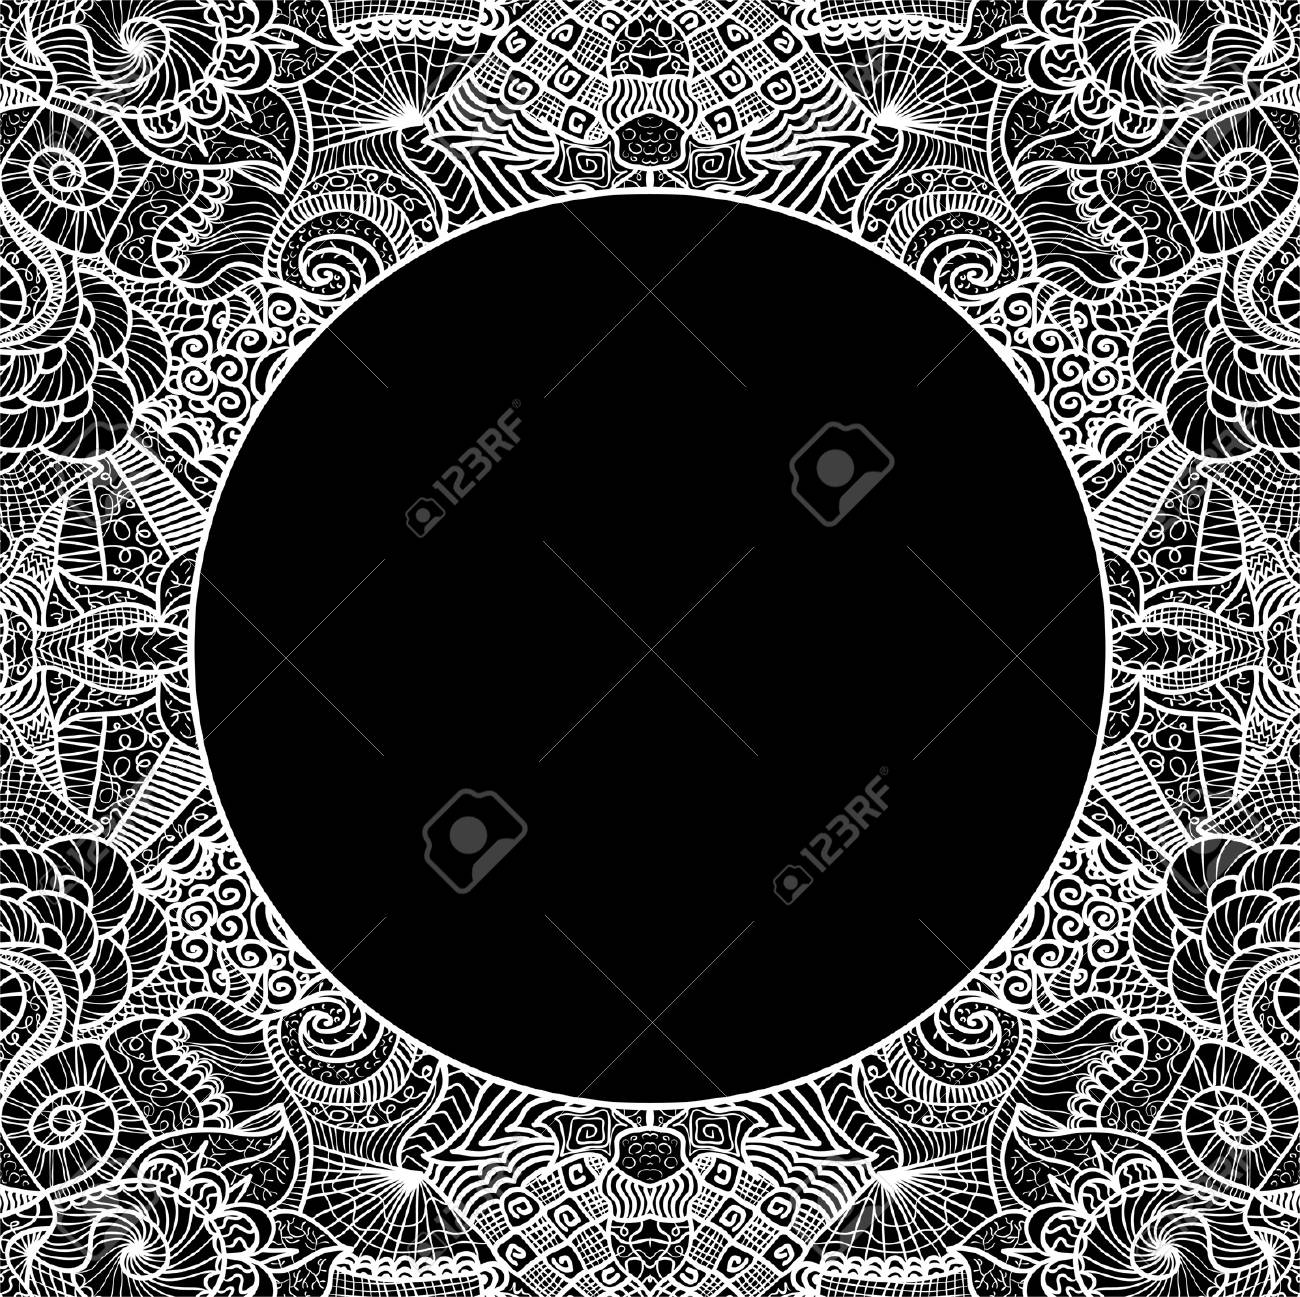 Circle on seamless pattern. Template with copy space. Stock Vector - 16473299